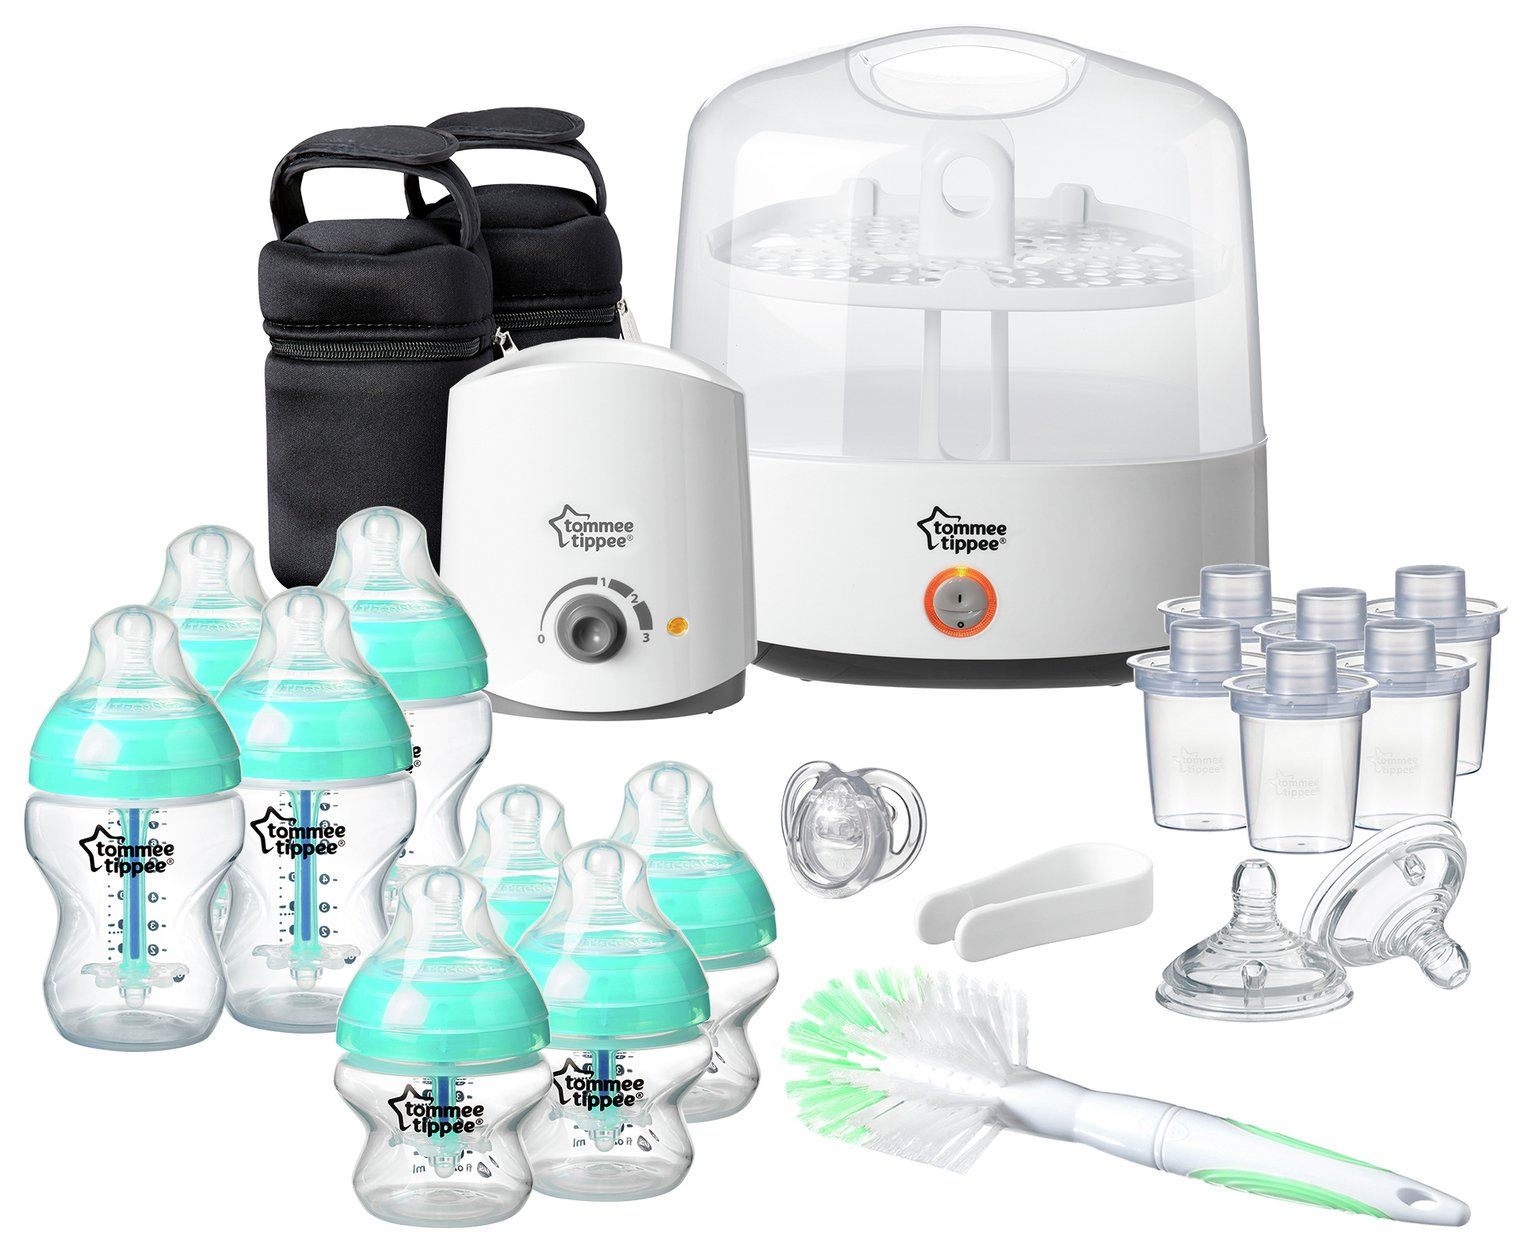 Tommee Tippee Advanced Anti-Colic Starter Set review